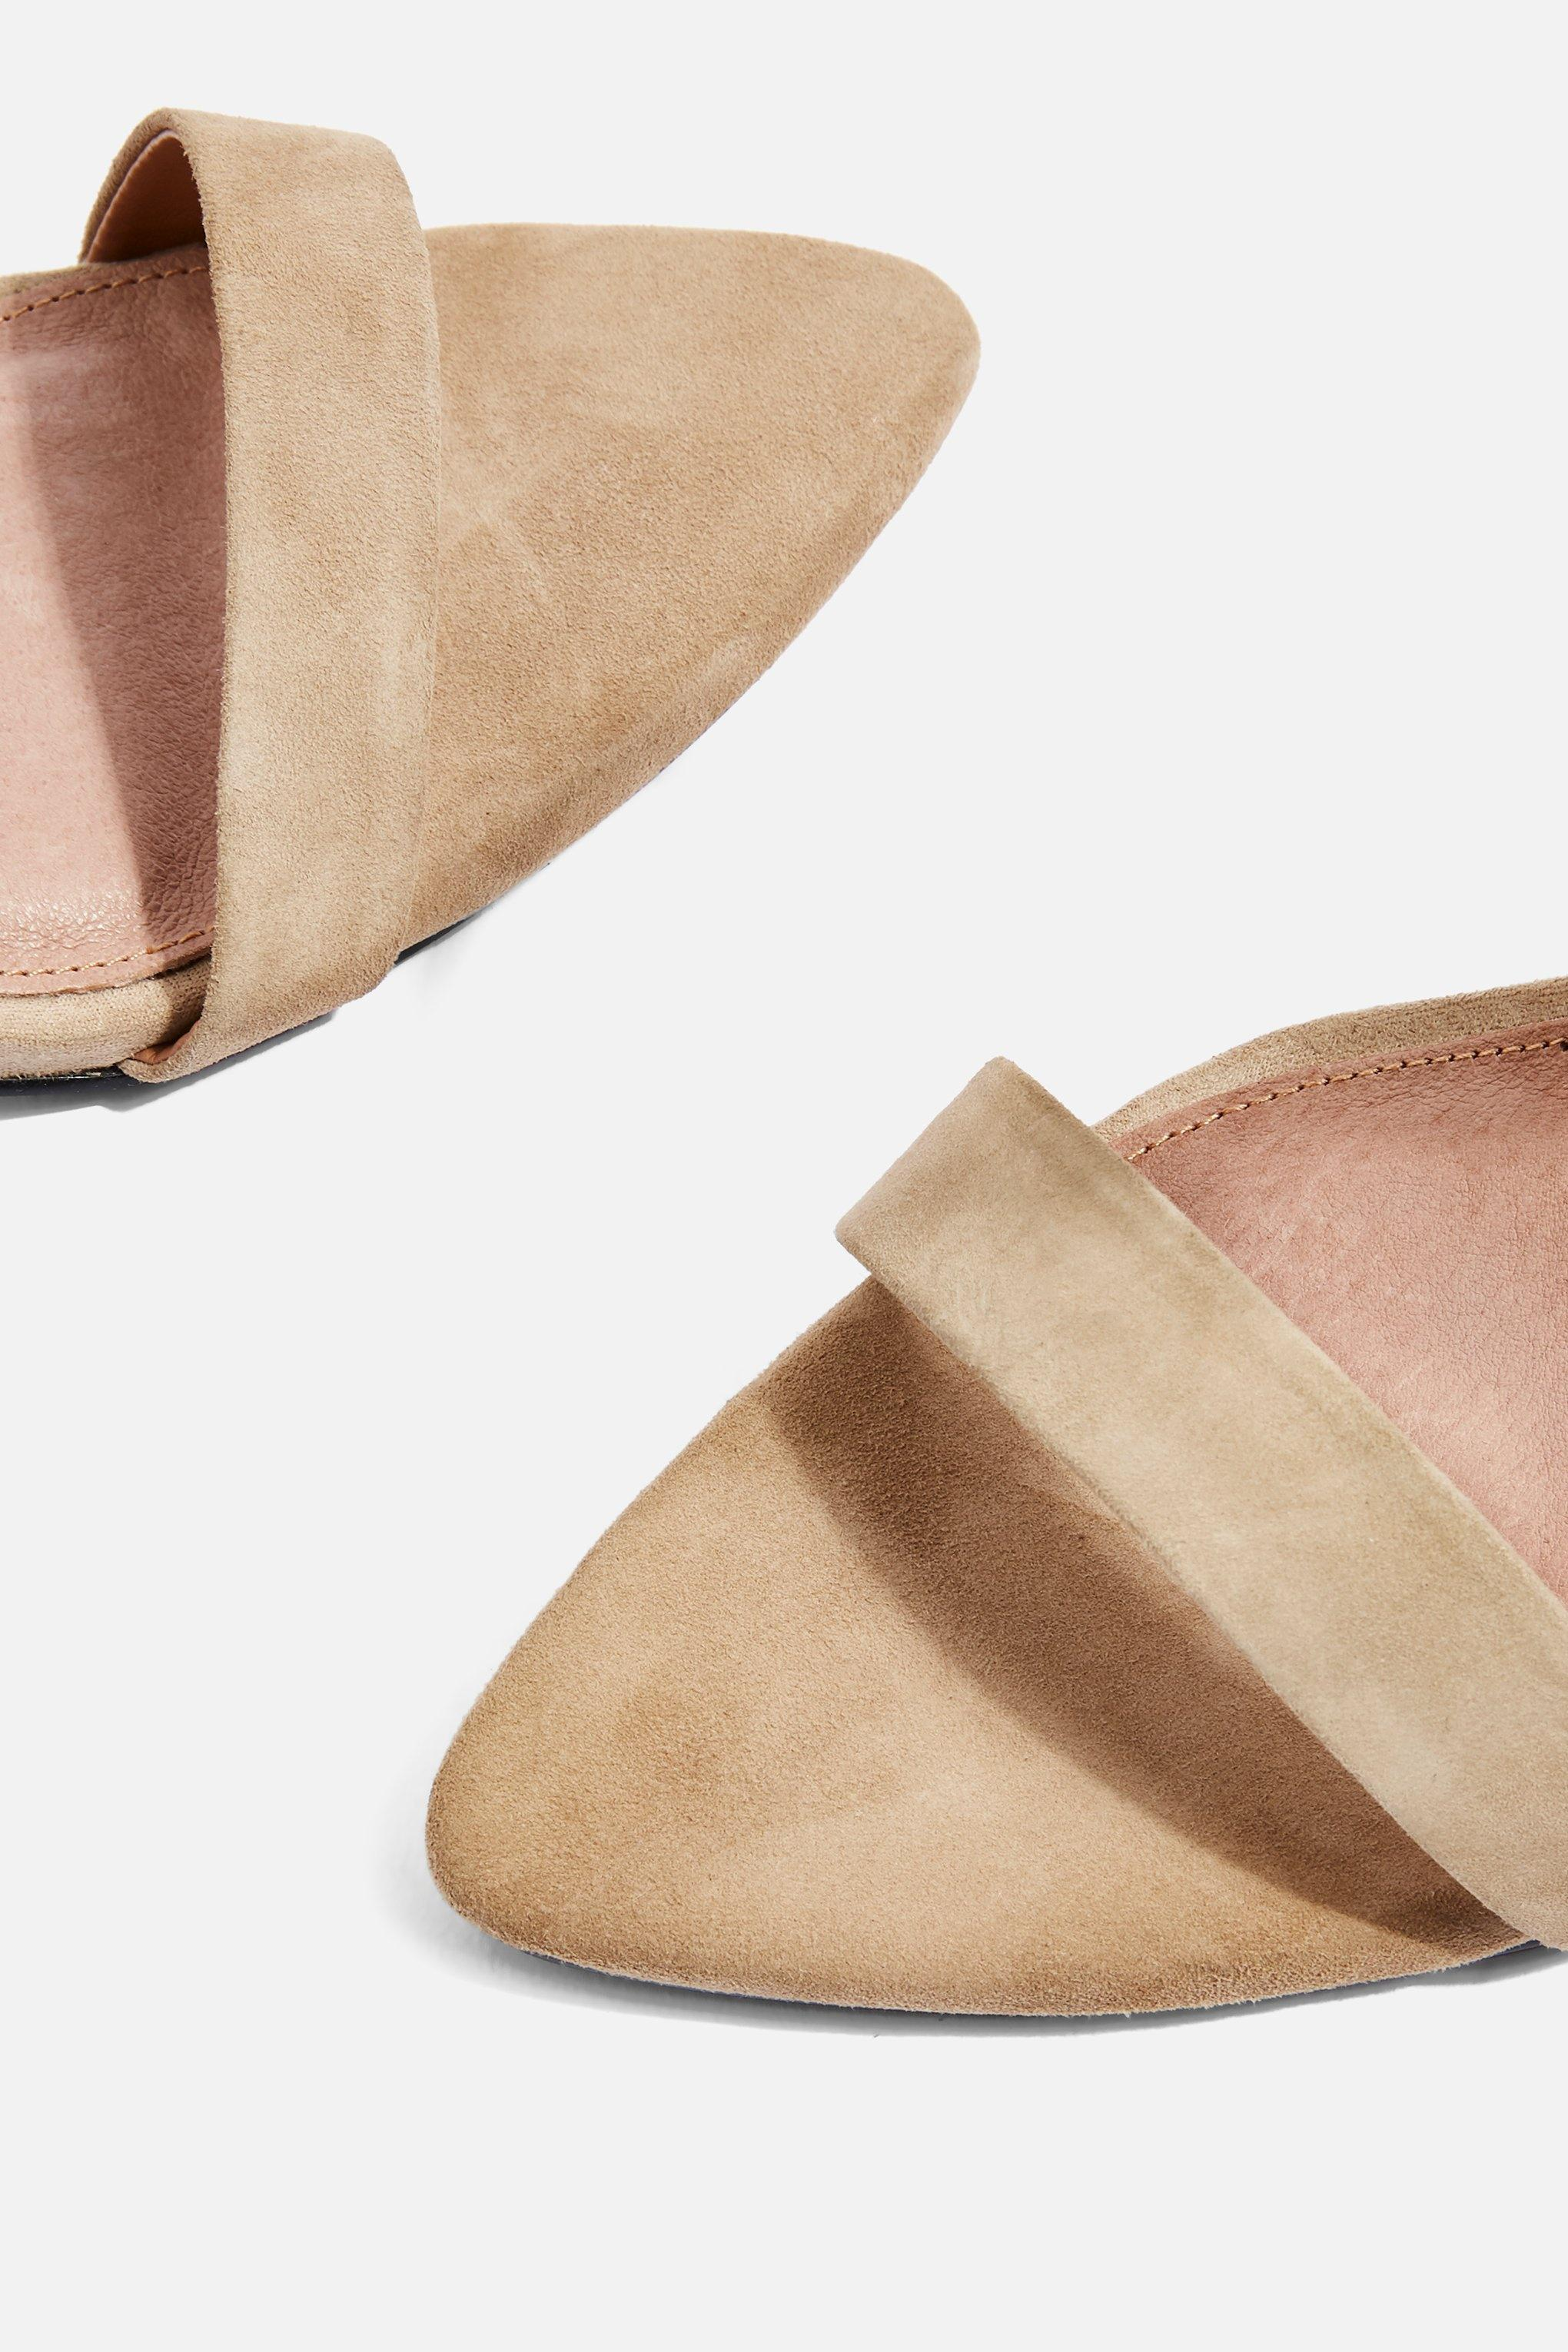 89be658c323 Lyst - TOPSHOP Rubix Two Part Pointed Sandals in Natural